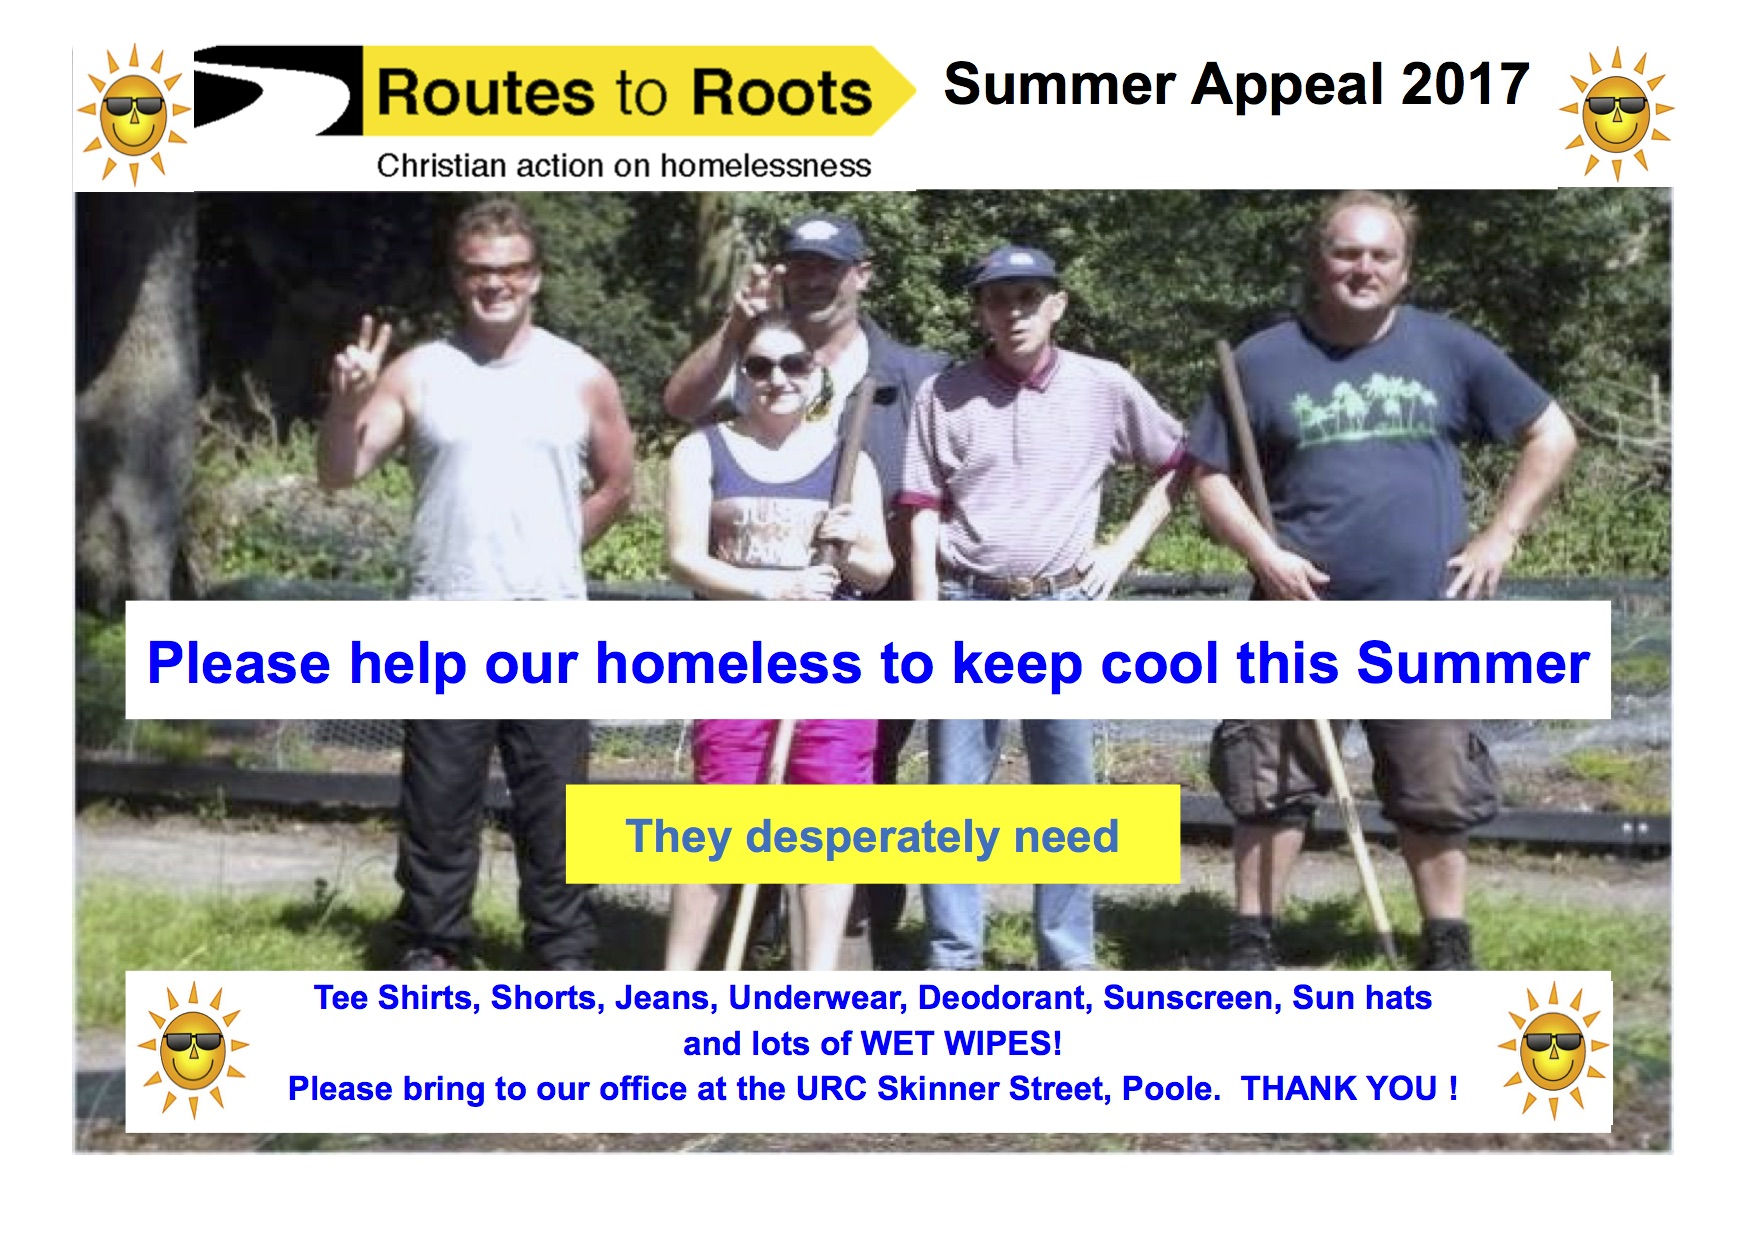 Summer Homeless Appeal